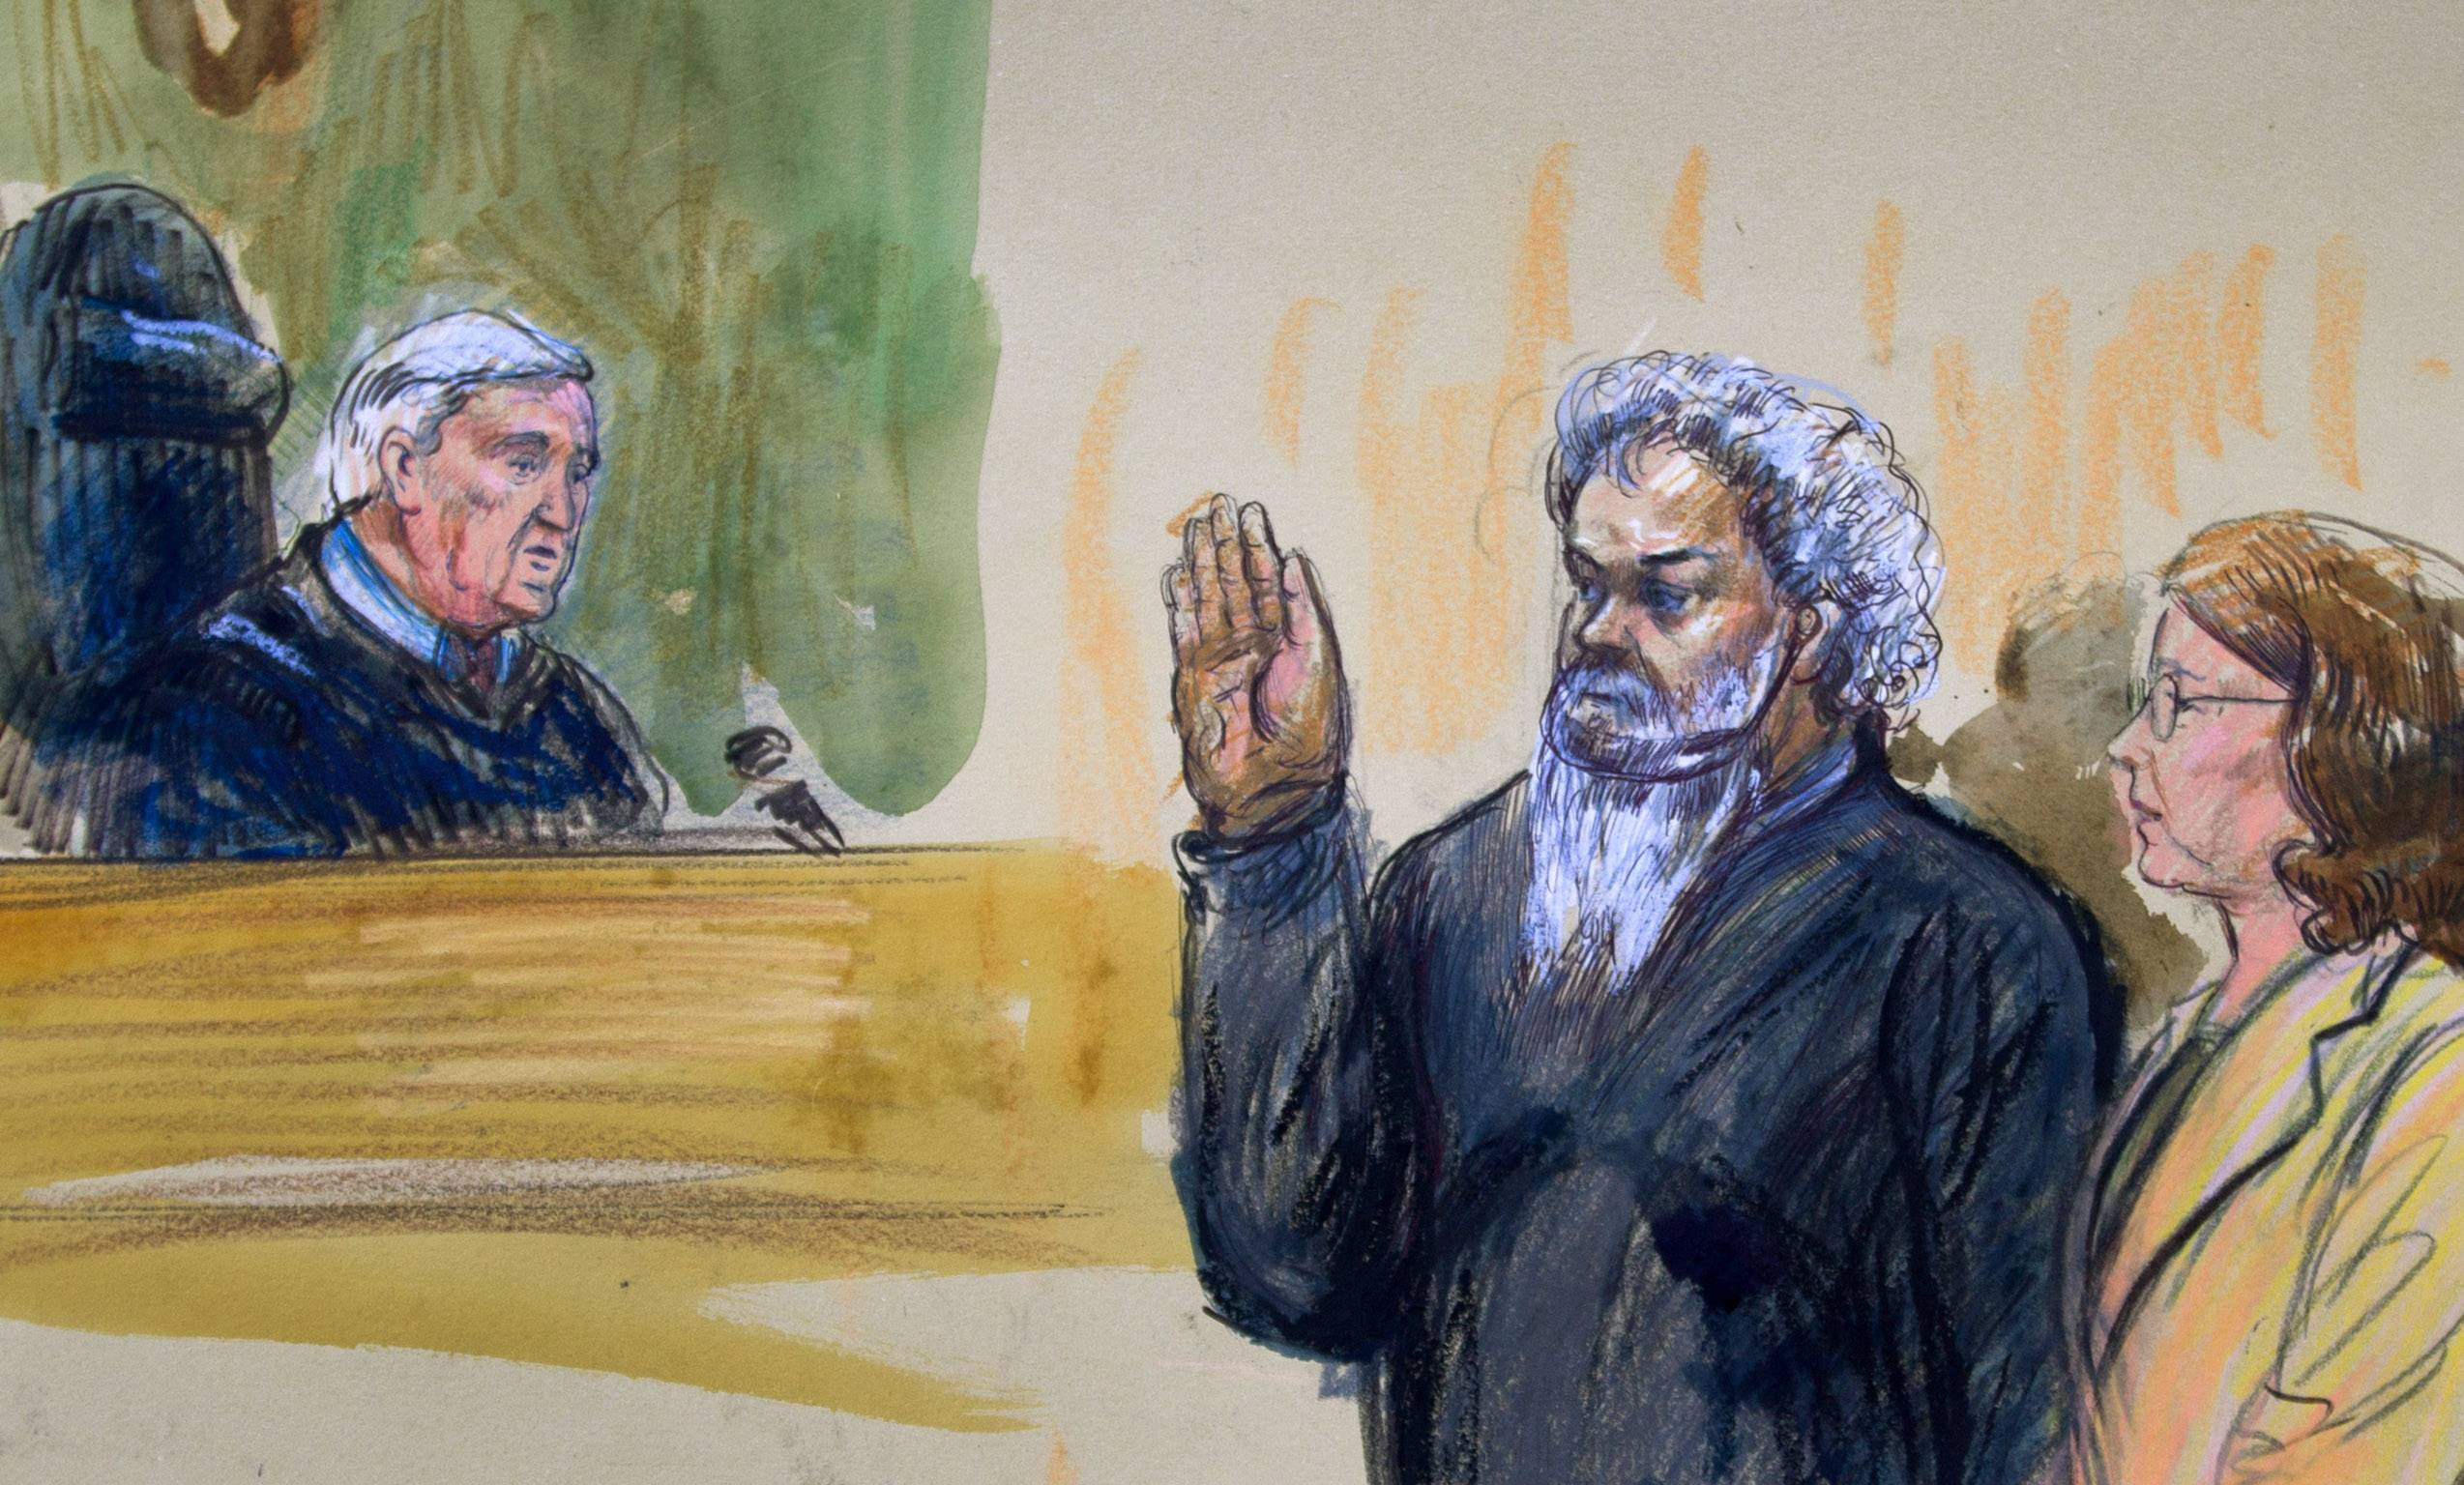 This artist's rendering shows United States Magistrate, Judge John Facciola, swearing in the defendant, Libyan militant Ahmed Abu Khatallah, wearing a headphone, as his attorney Michelle Peterson looks on during a hearing at the federal U.S. District Court in Washington Saturday. The hearing of the Libyan accused of masterminding deadly Benghazi attacks, lasted ten minutes; he pleaded not guilty to conspiracy.